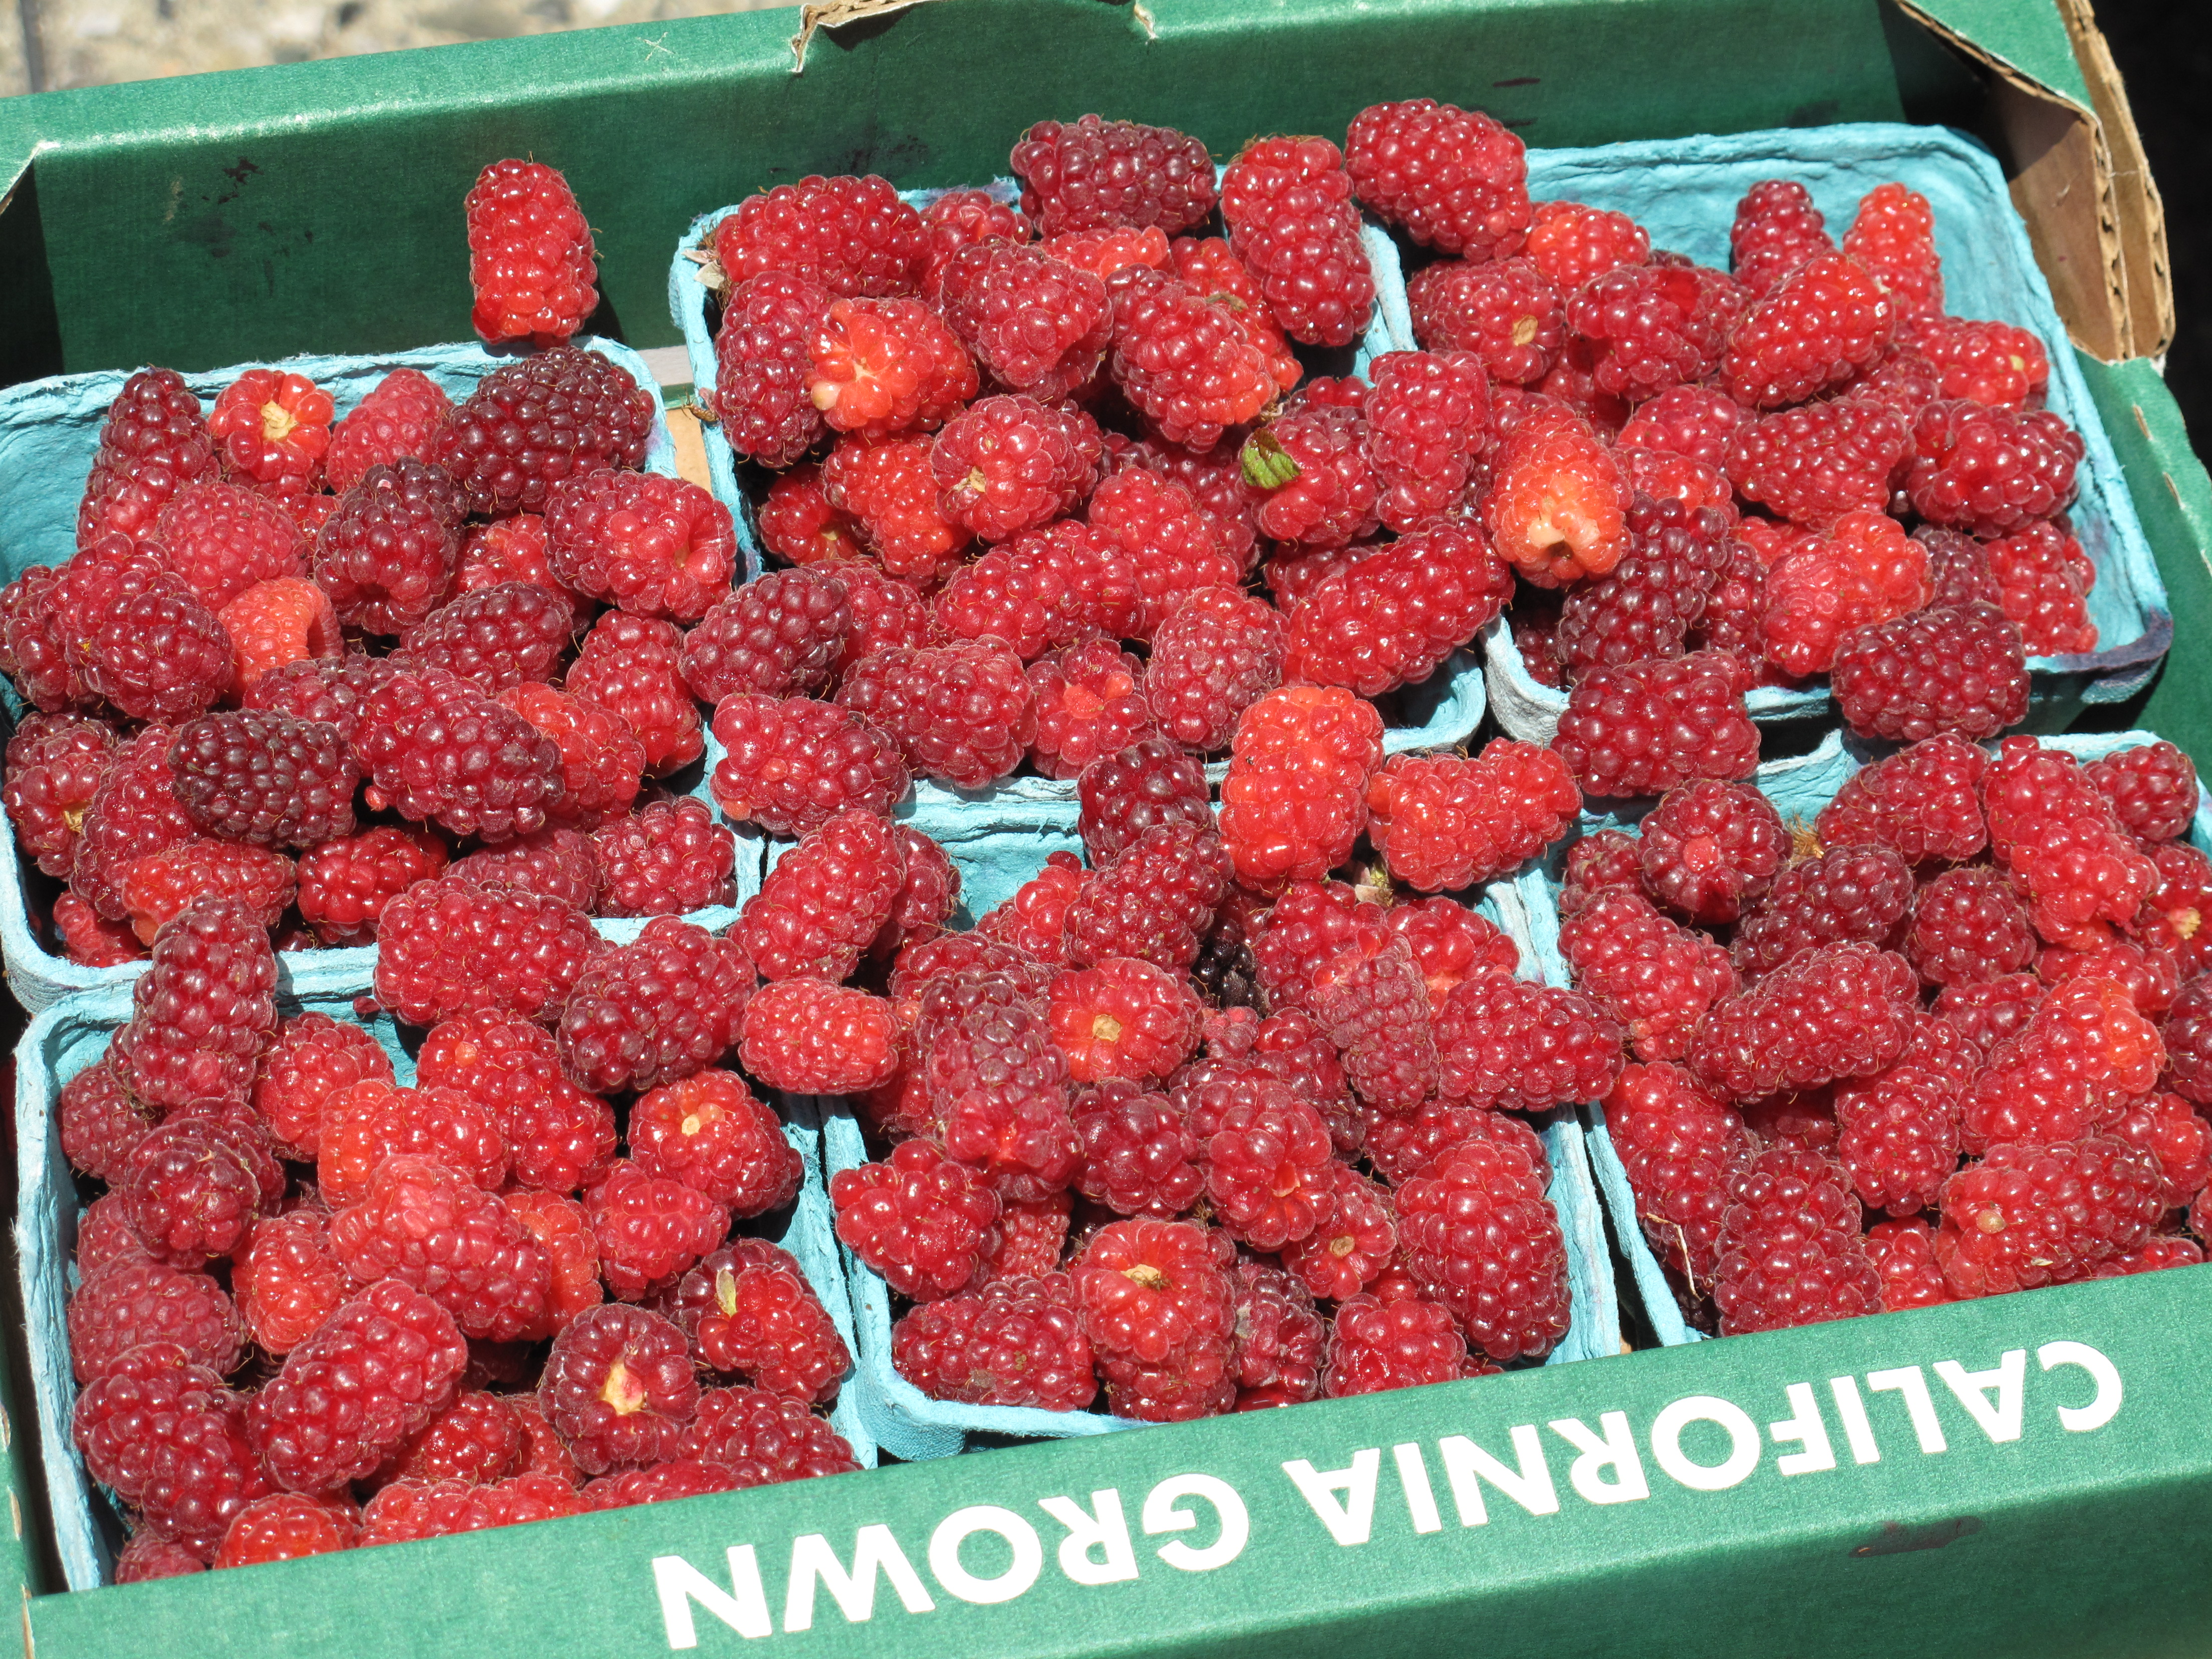 Fresh tayberries from Yerena Farms.